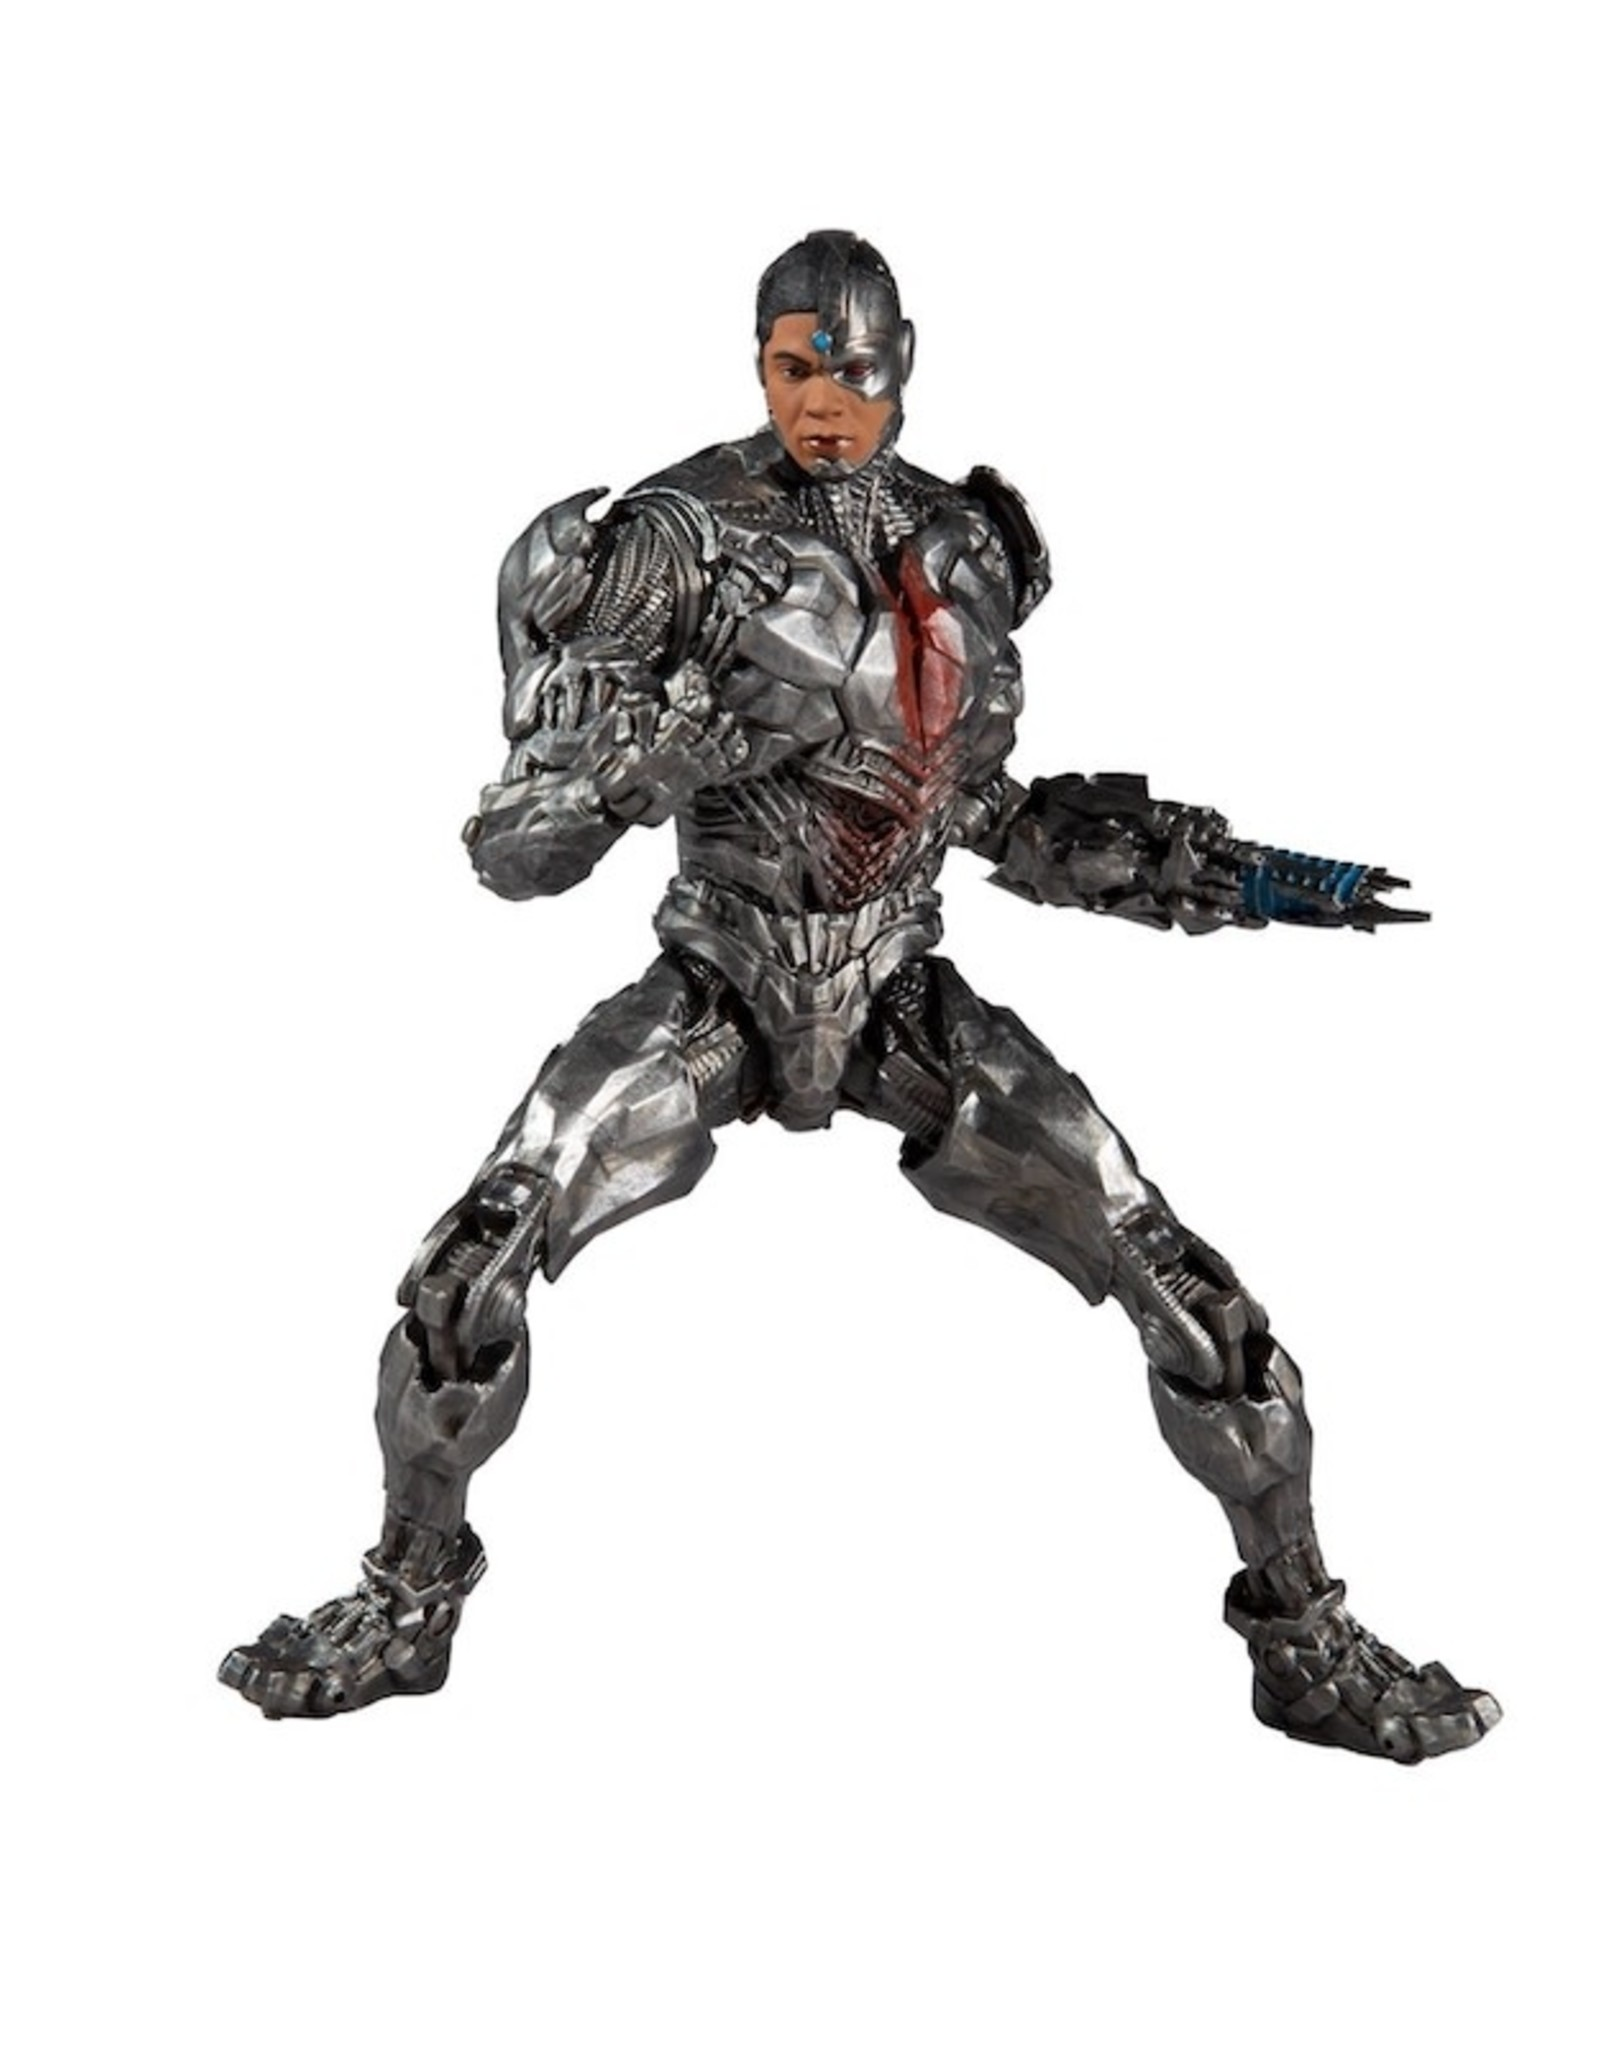 McFarlane Toys DC Justice League 7in Scale Action Figure Cyborg